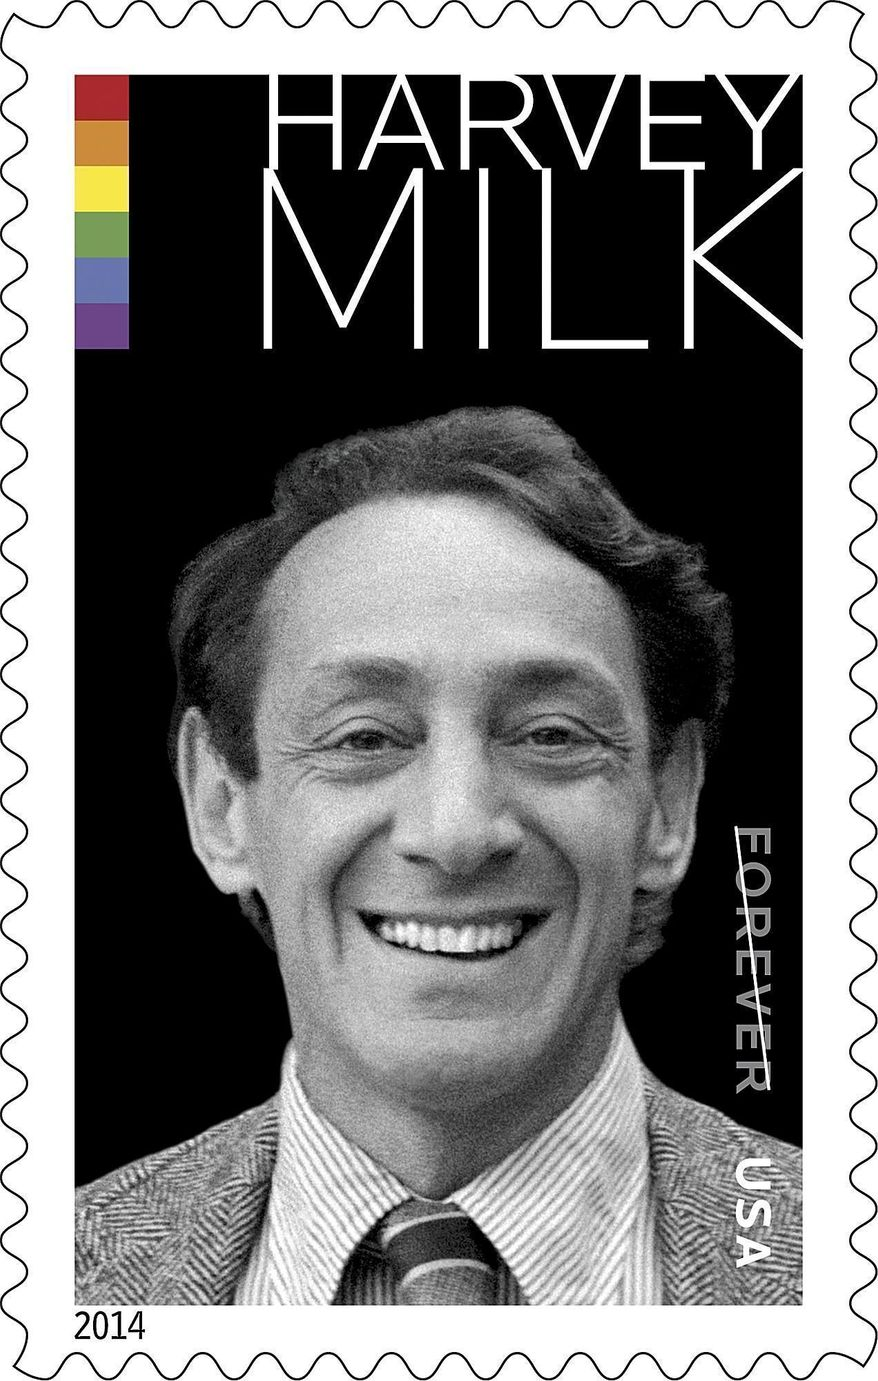 This undated image released by the United States Postal Service shows the Harvey Milk Forever Stamp. The U.S. Postal Service will feature Milk, the California politician and gay rights icon, on its commemorative stamp. The image is based on a photograph taken around 1977 as Milk stood outside his Castro Street Camera Store in San Francisco. (AP Photo/U.S. Postal Service)